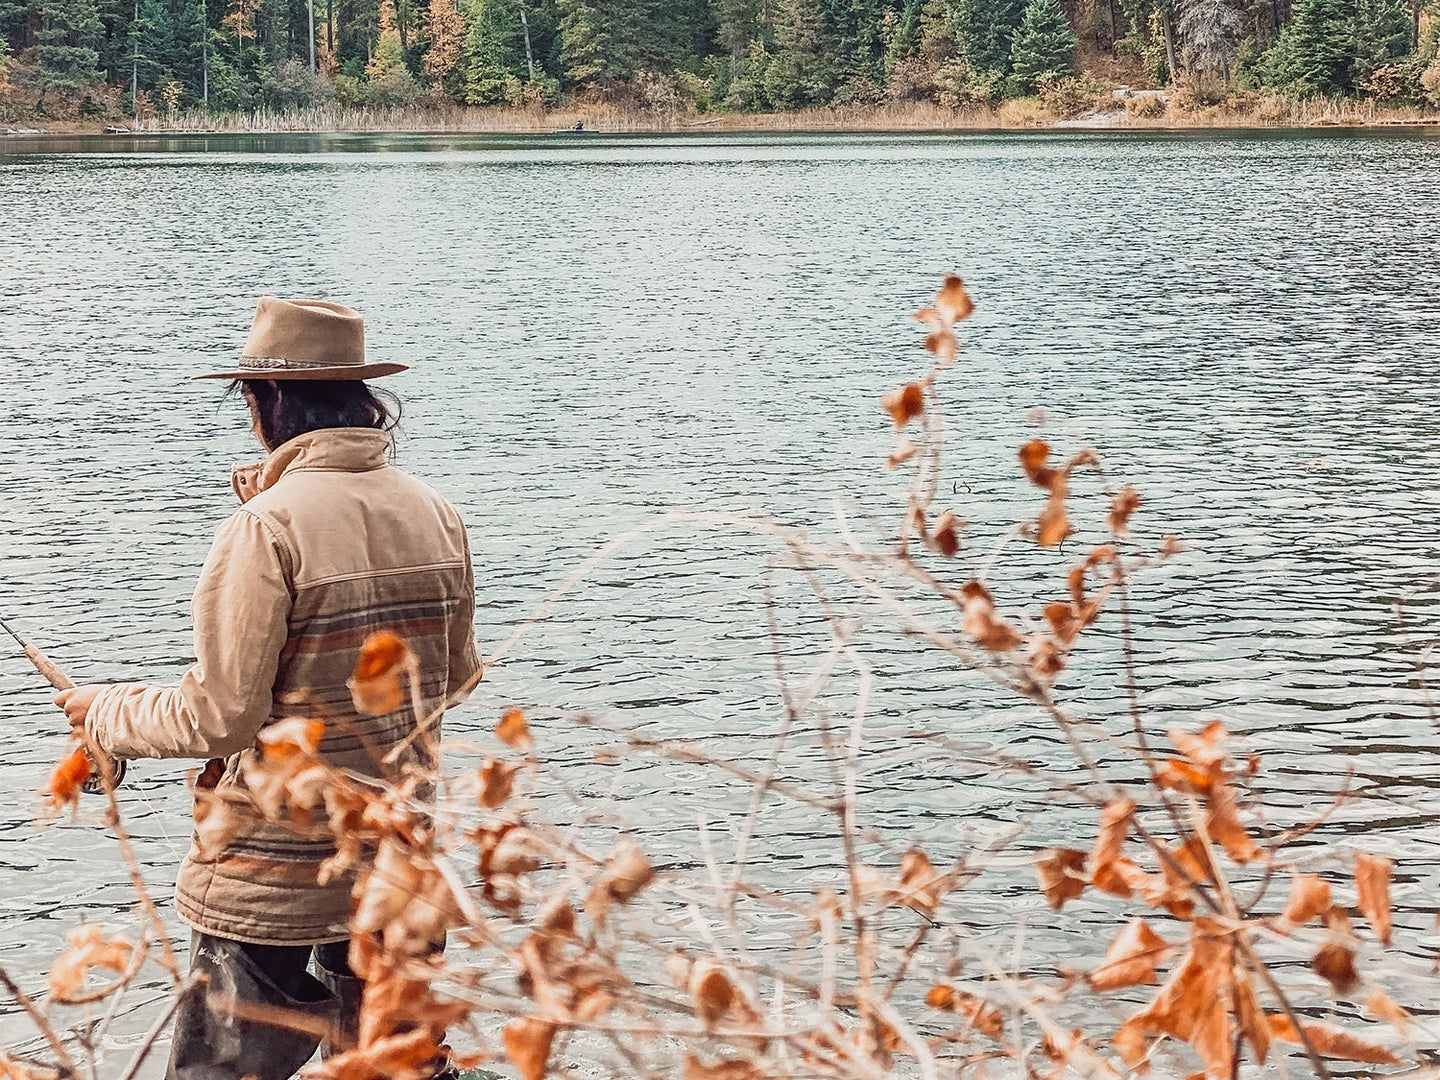 Man in brown clothing wades through a stream.